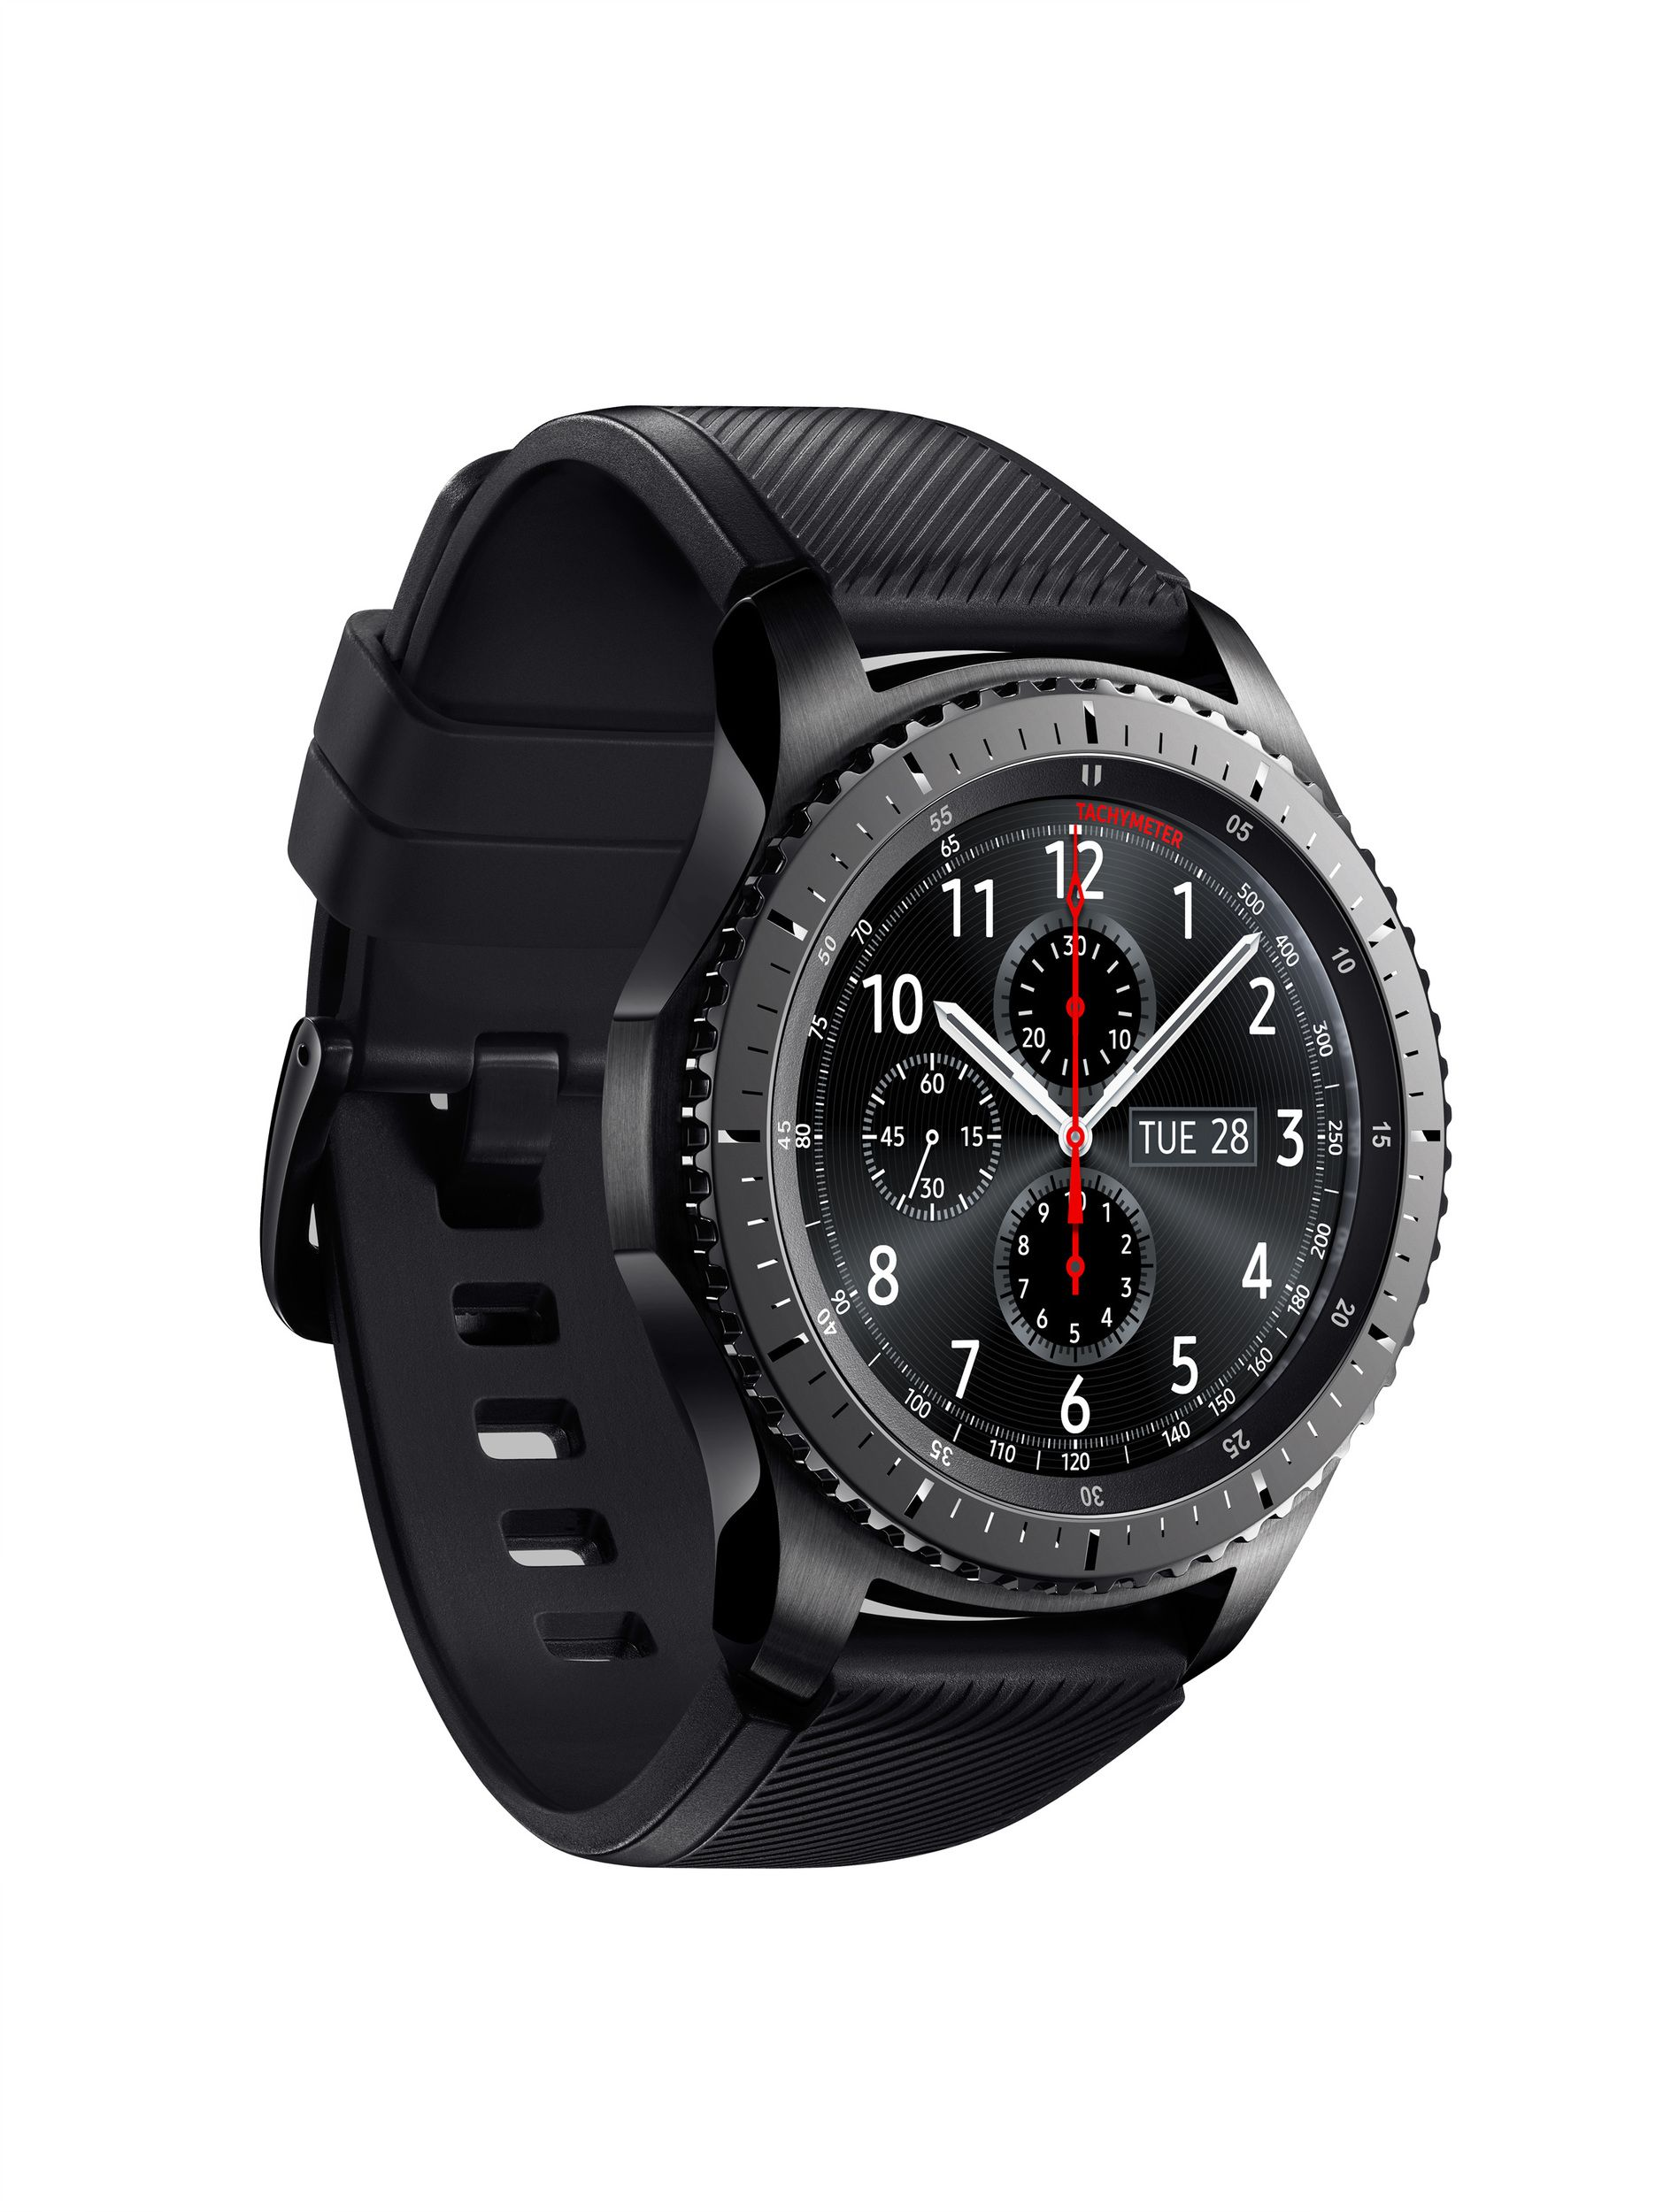 Samsung S Gear S3 Watches Are More Elegant And Rugged Than Ever Watch Samsung Gear S3 Frontier Smart Watch Gear S3 Frontier